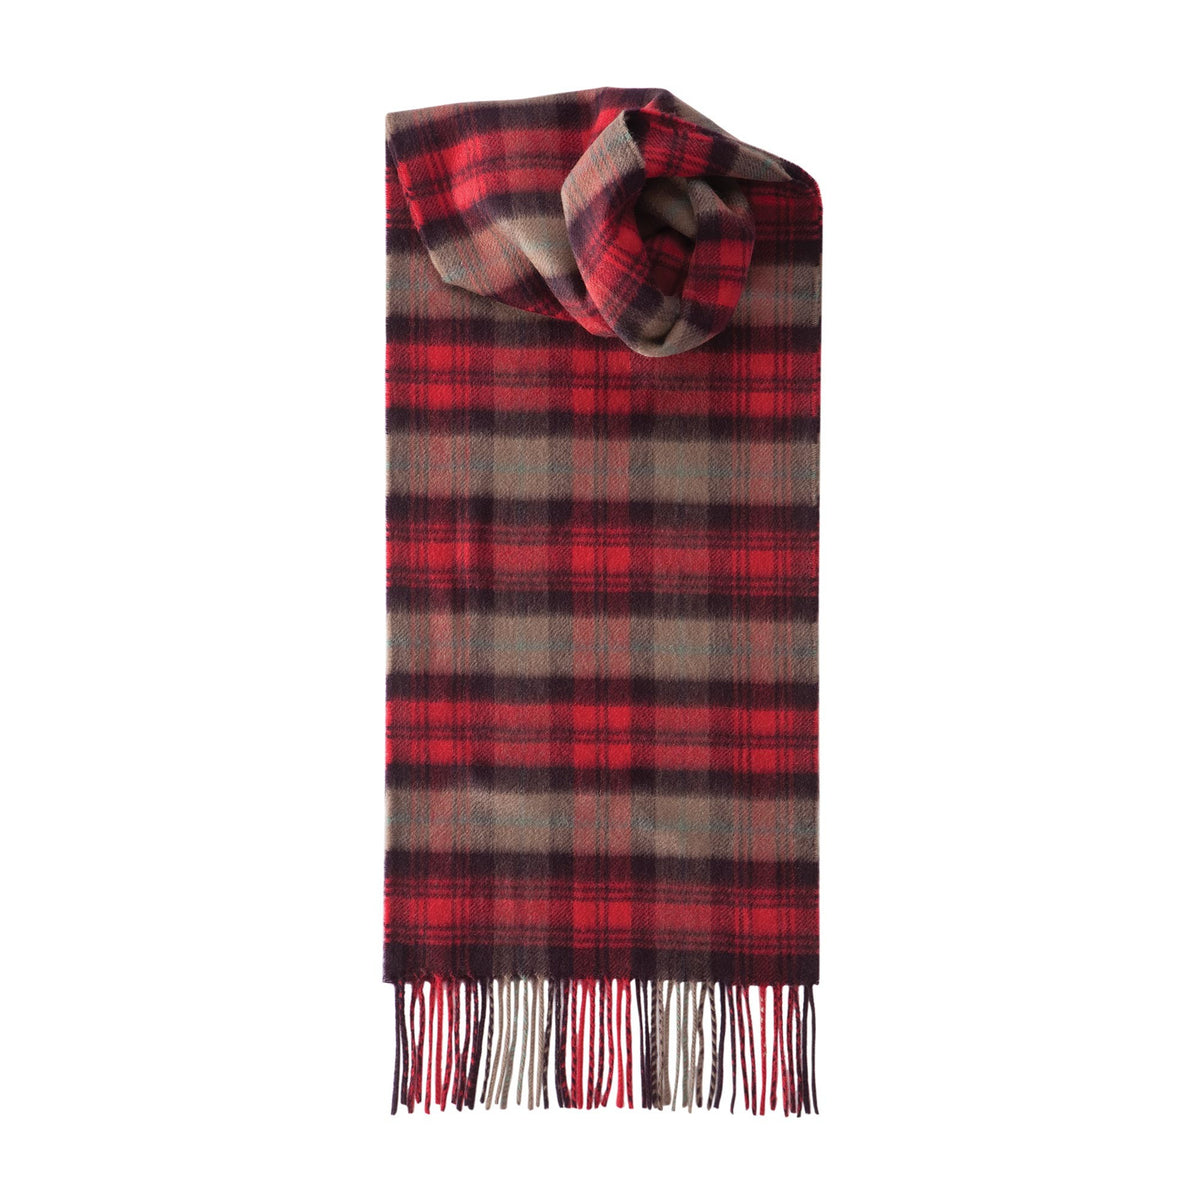 Johnsons of Elgin | Vintage Maclachlan Tartan Check Cashmere Scarf | buy at The Cashmere Choice | London